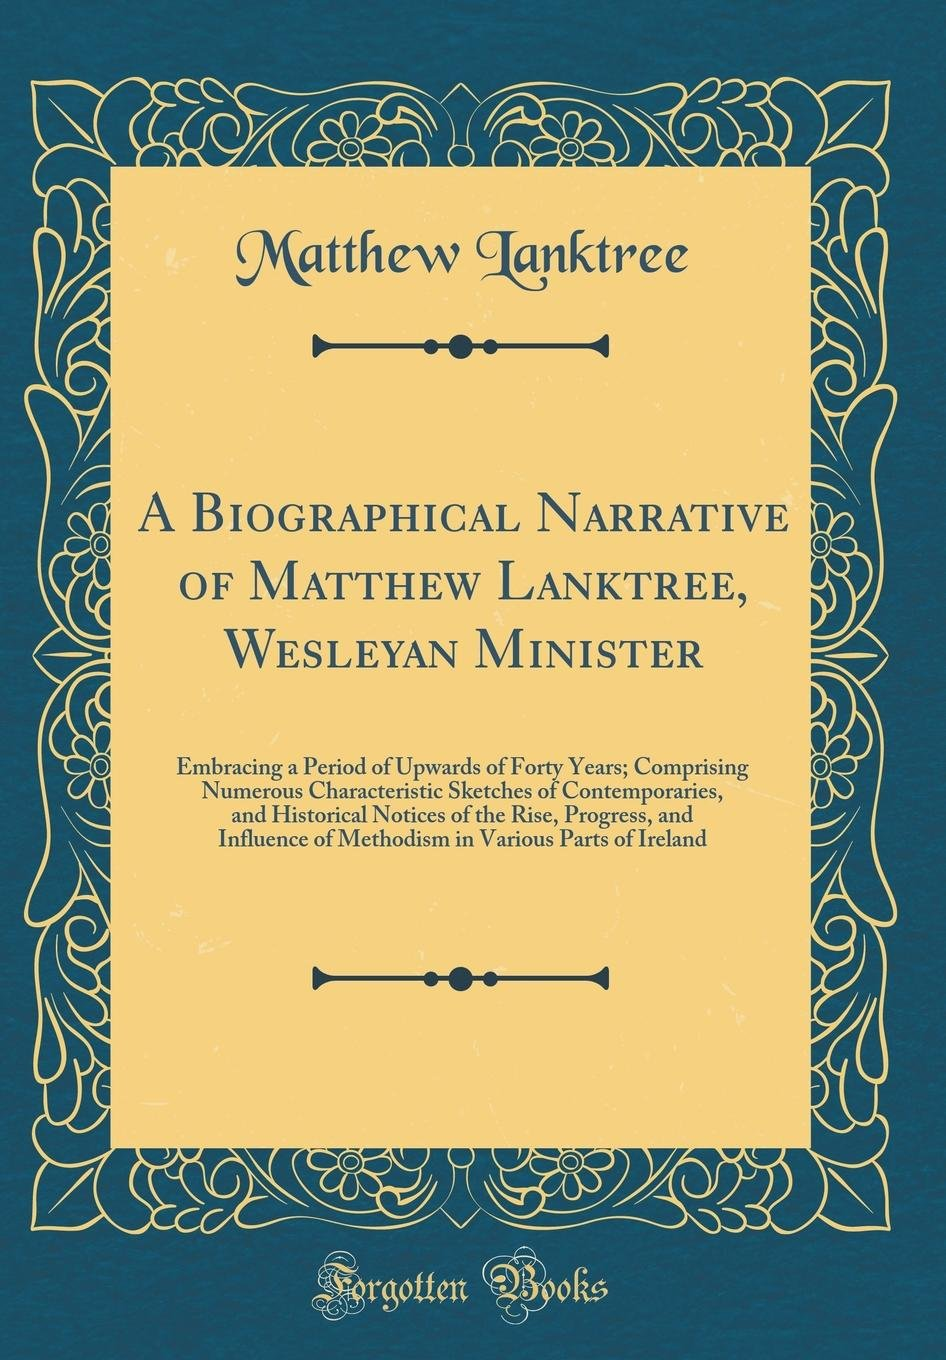 A Biographical Narrative of Matthew Lanktree, Wesleyan Minister: Embracing a Period of Upwards of Forty Years; Comprising Numerous Characteristic ... Progress, and Influence of Methodism in Vario pdf epub